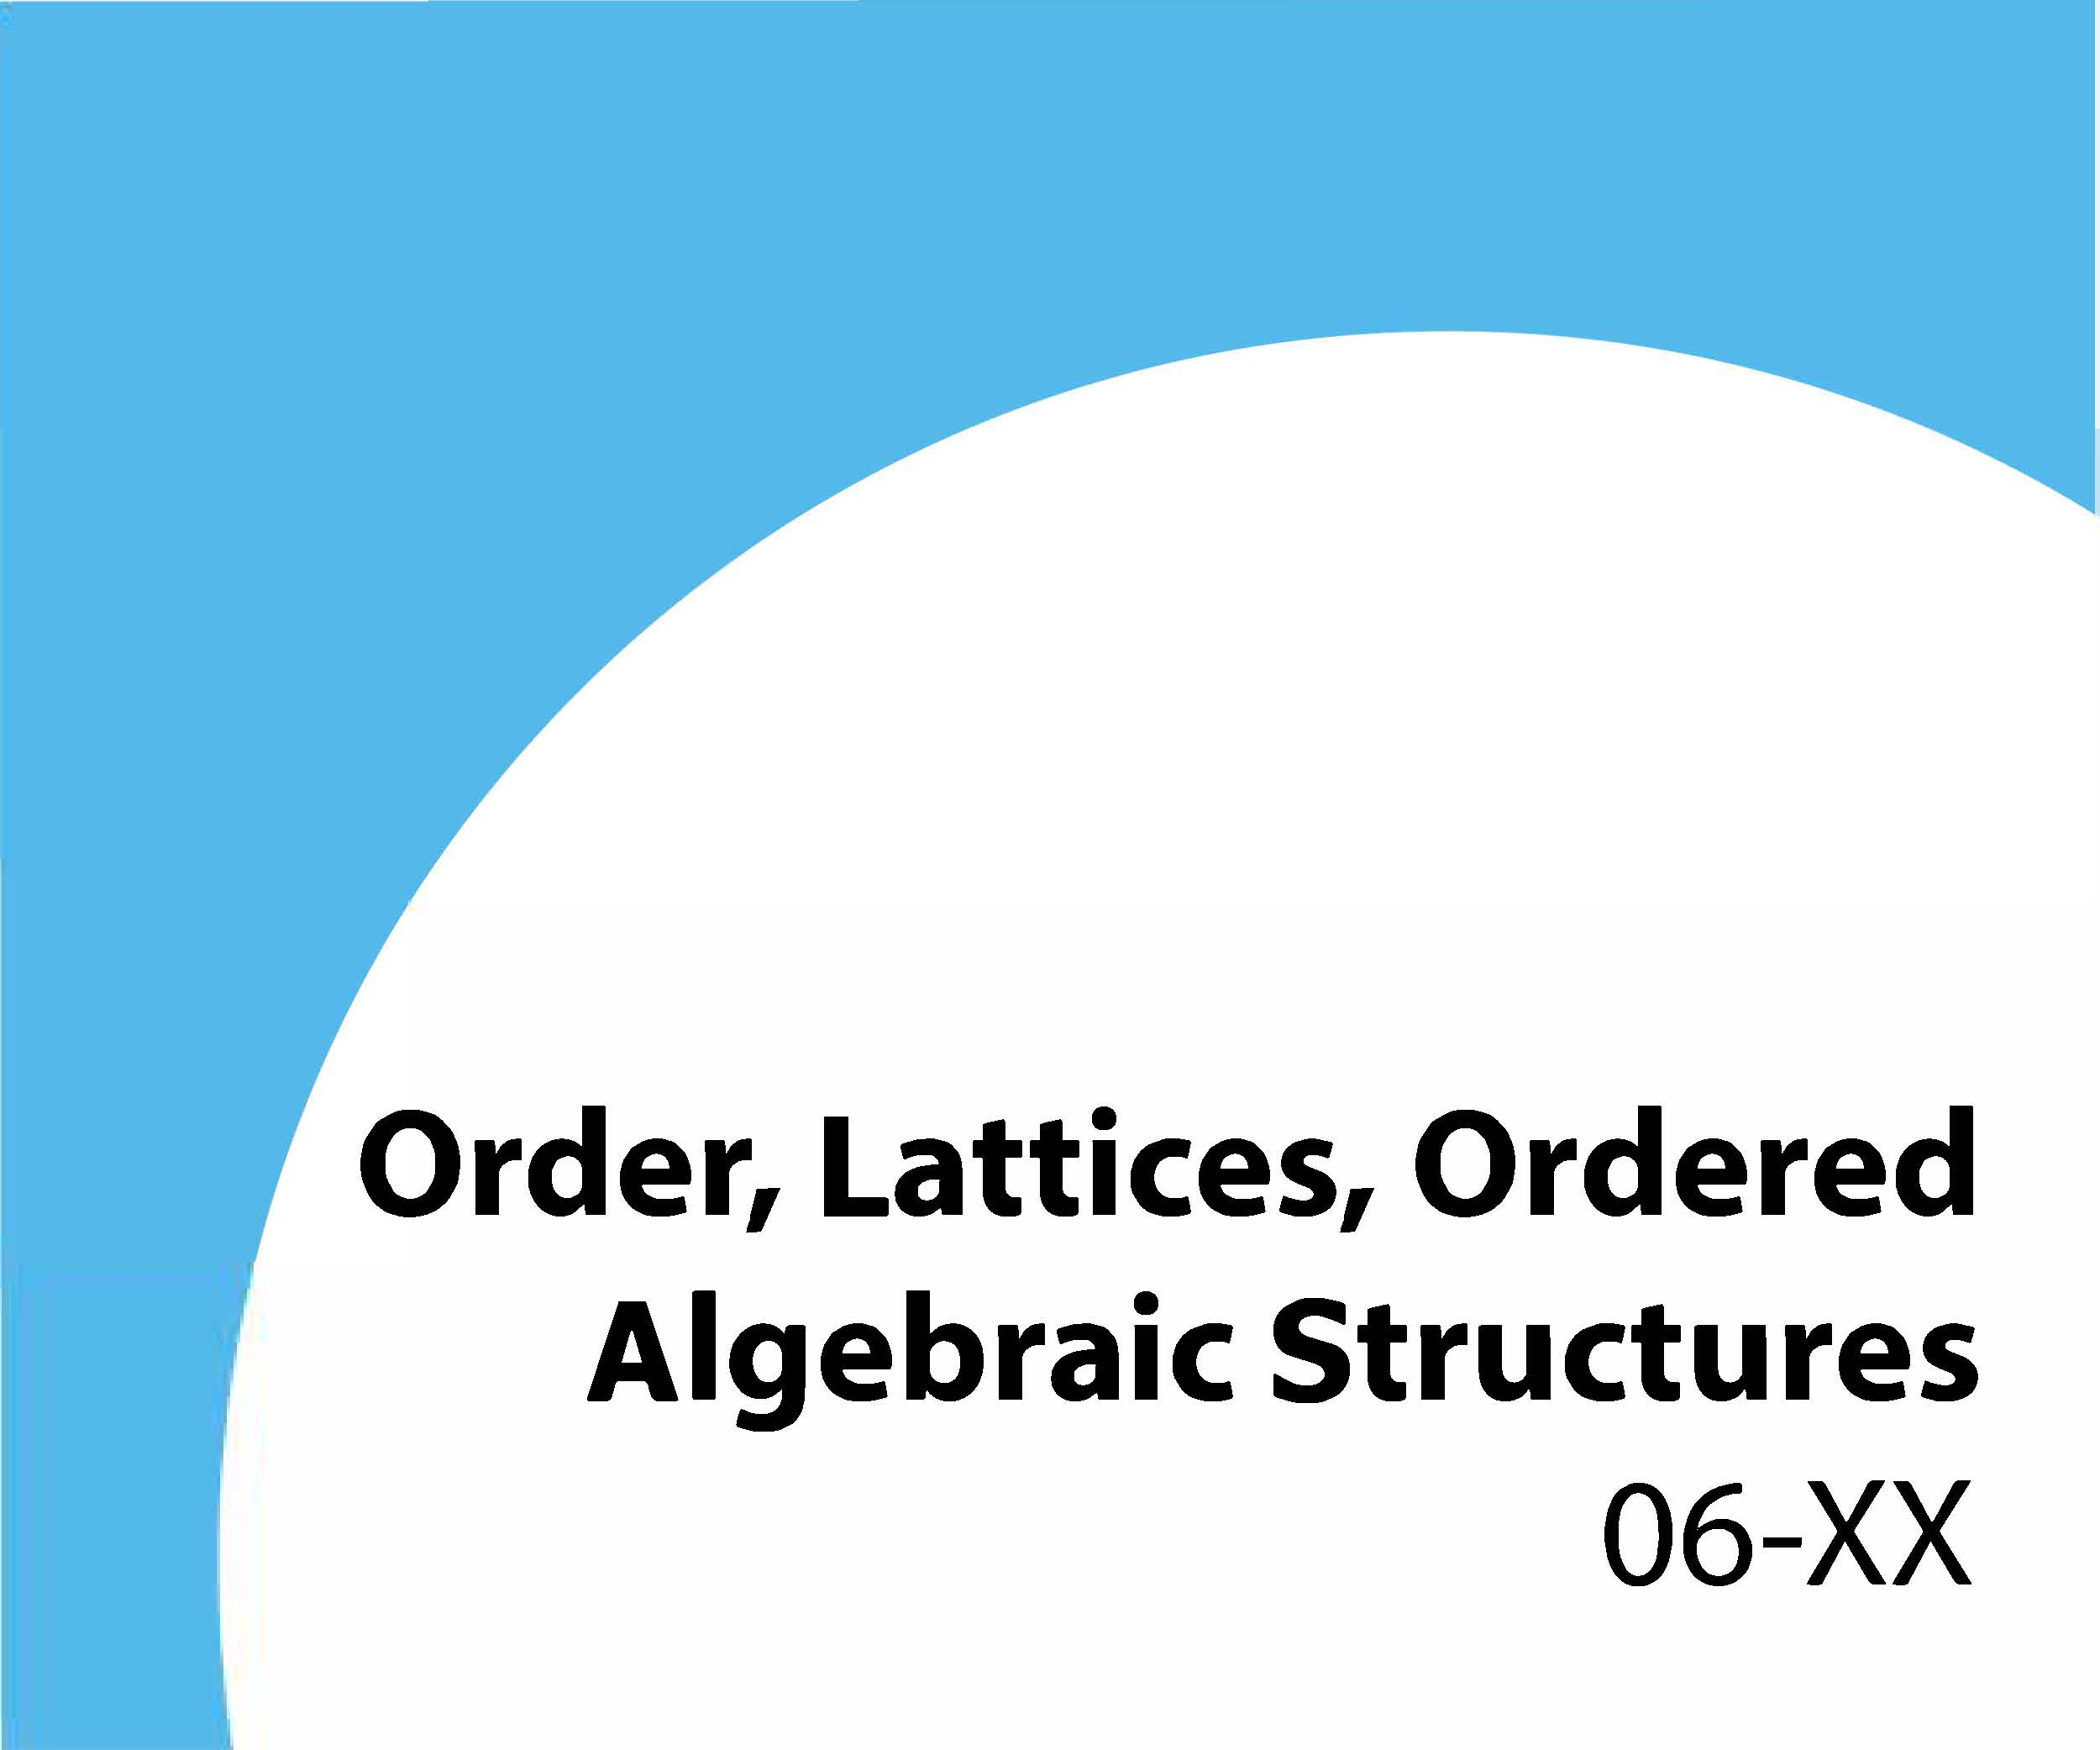 06-xx Order, lattices, ordered algebraic structures